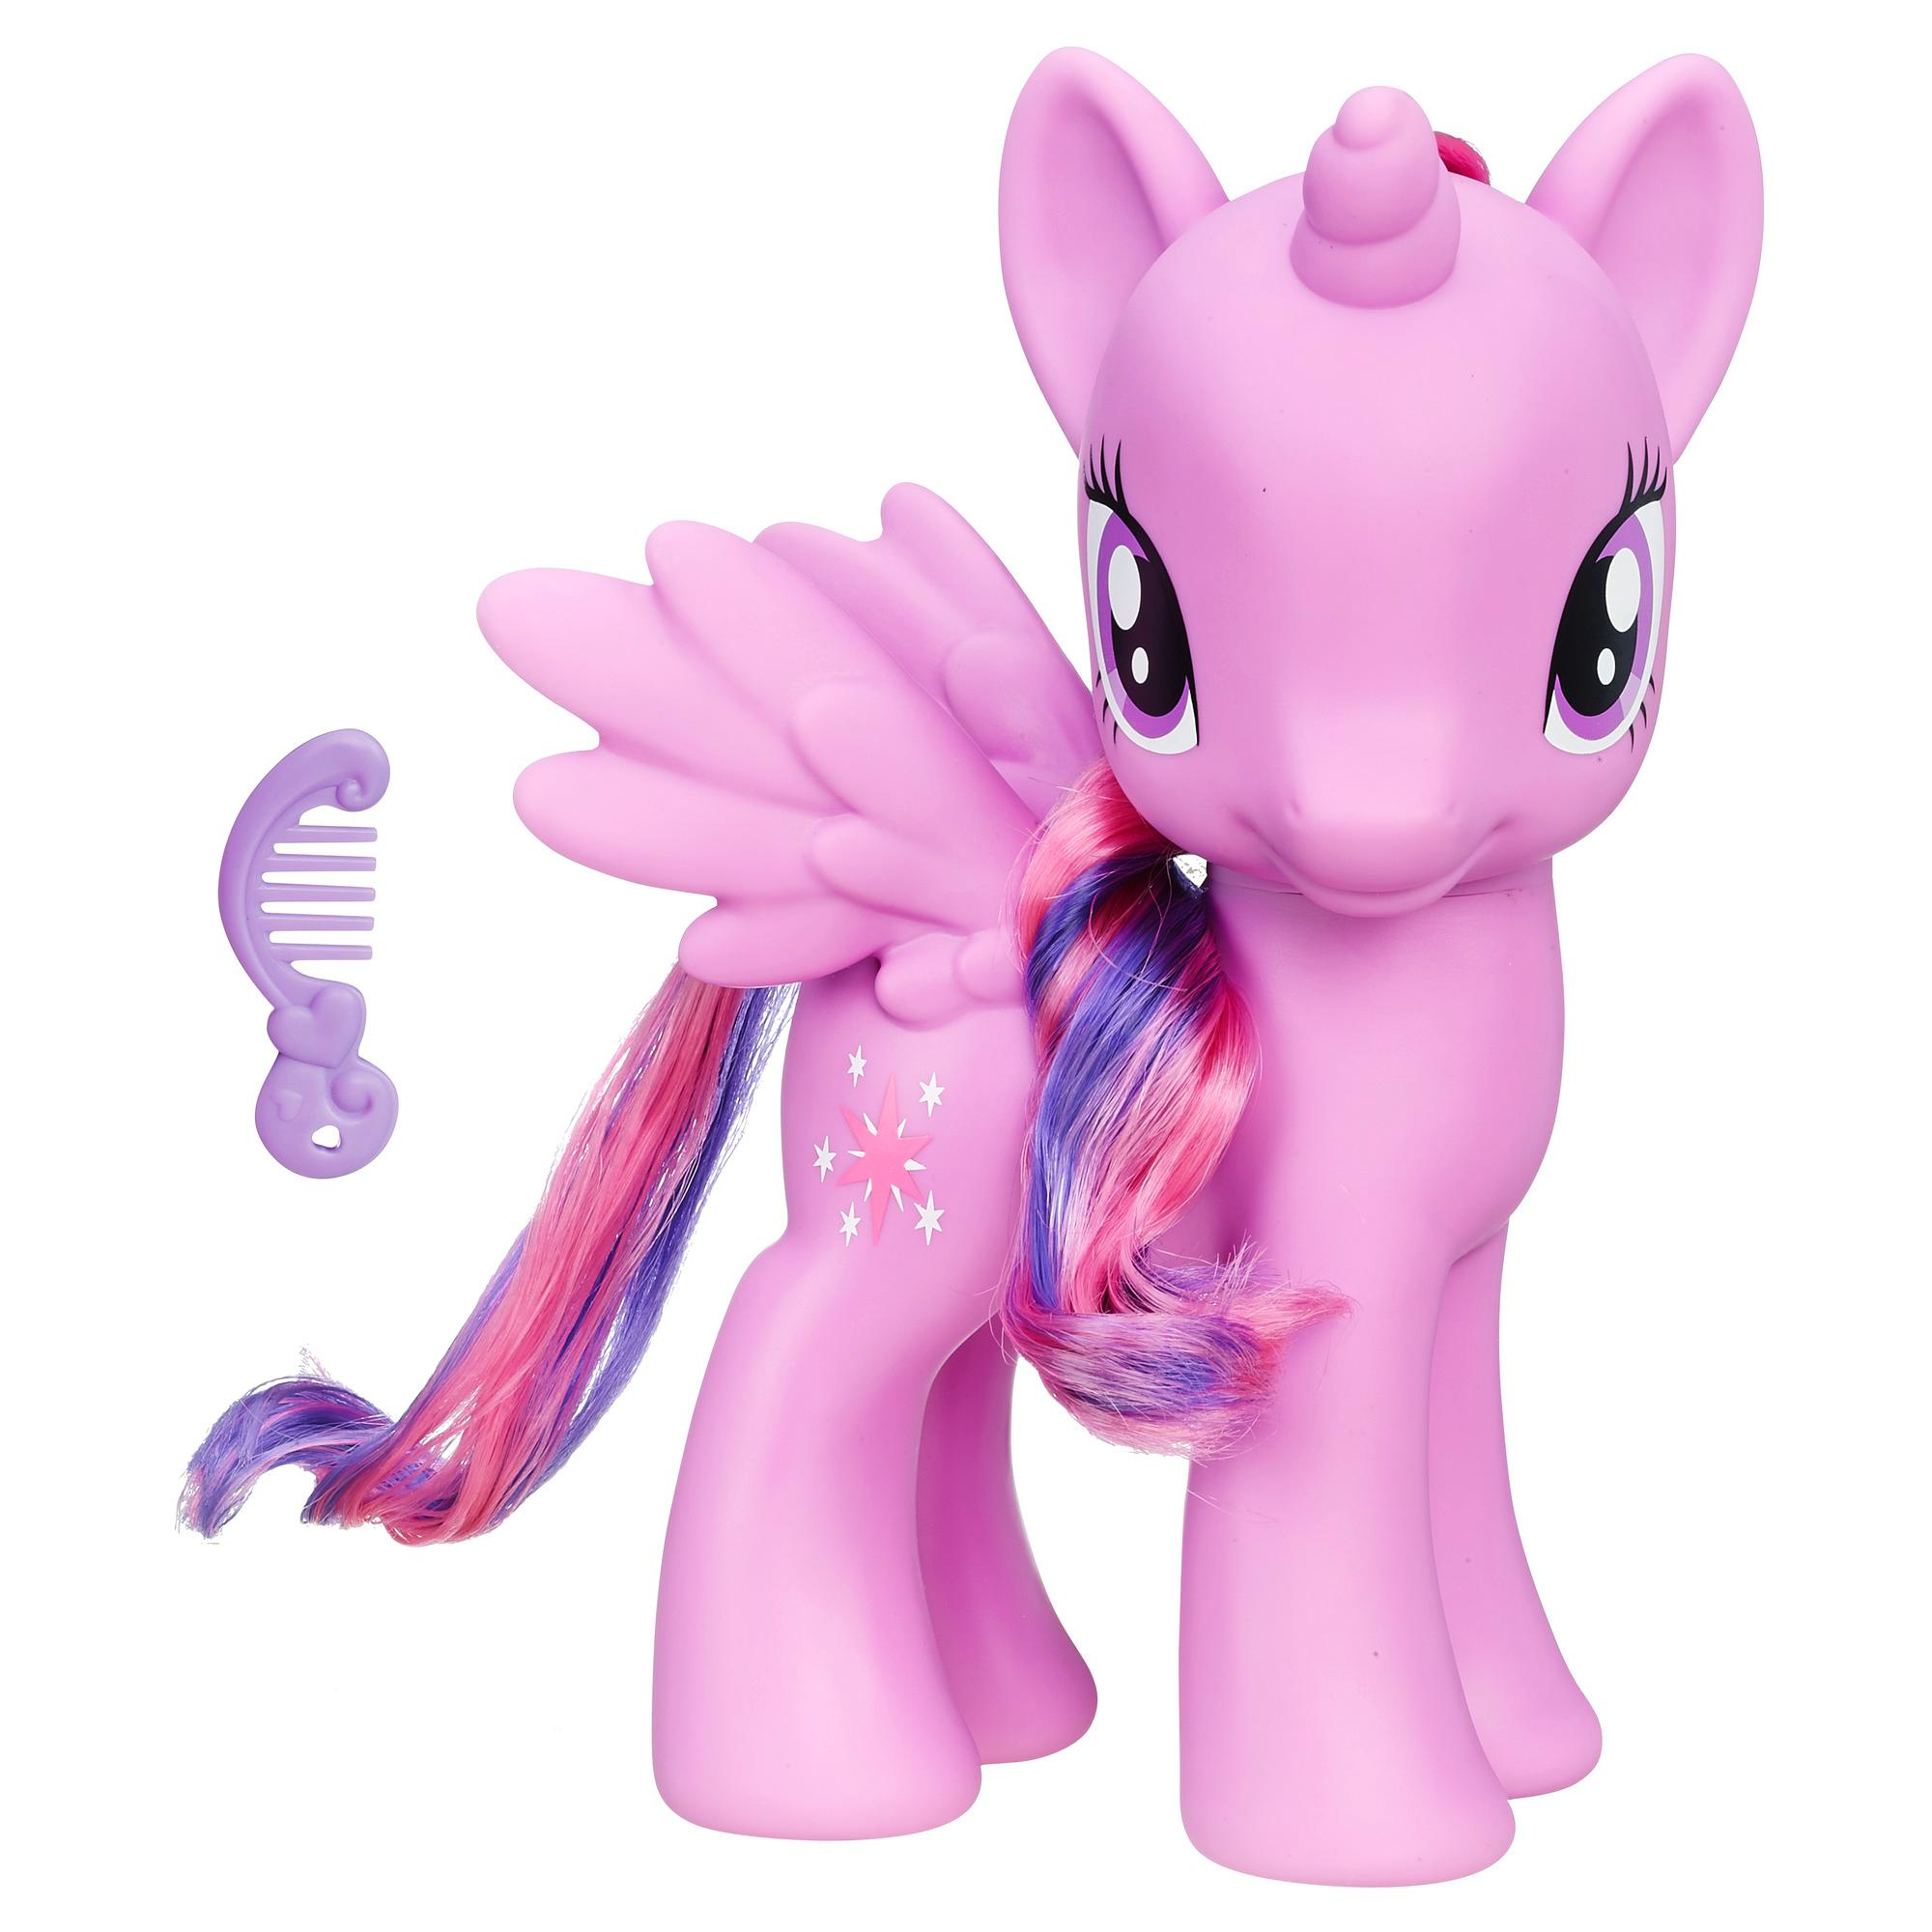 My Little Pony Friendship is Magic Princess Twilight Sparkle 8-Inch Figure